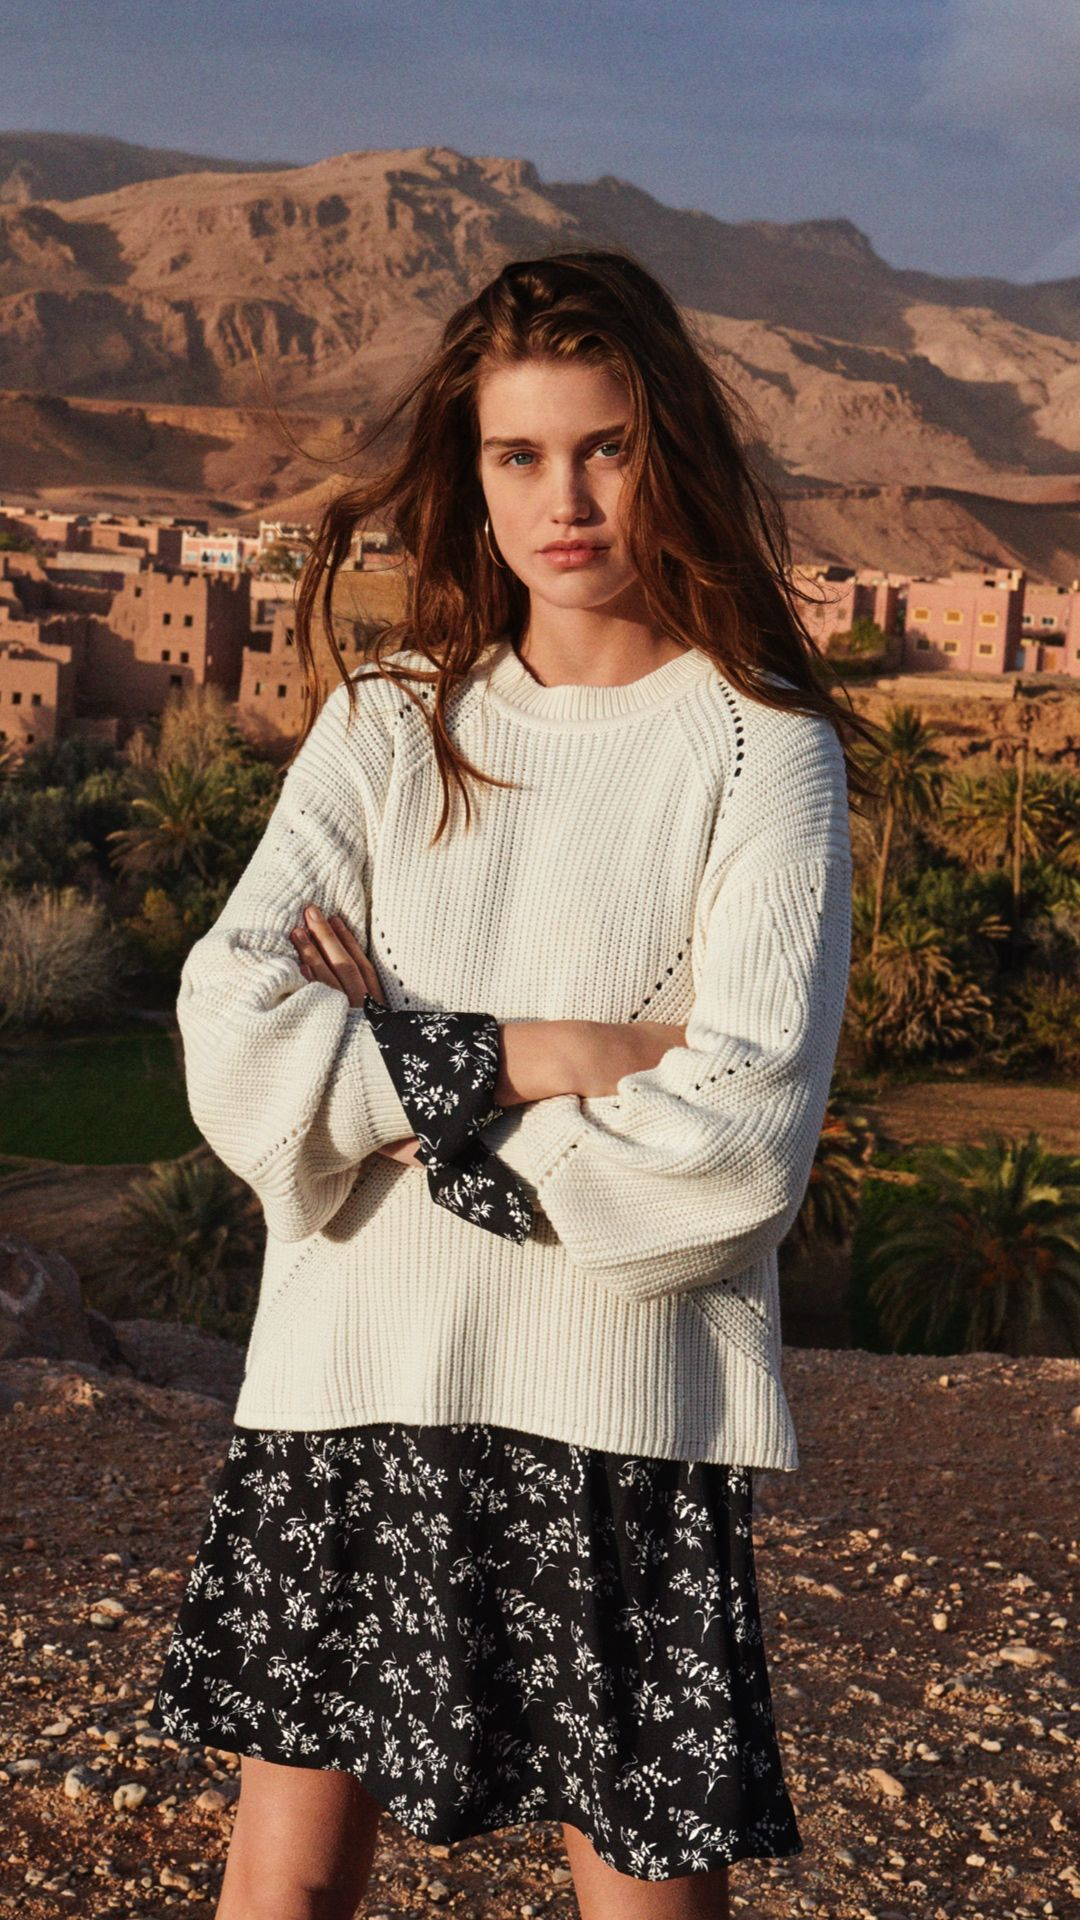 H&m Online In Usa Bohemian Details Breezy Fabrics And Slouchy Silhouettes